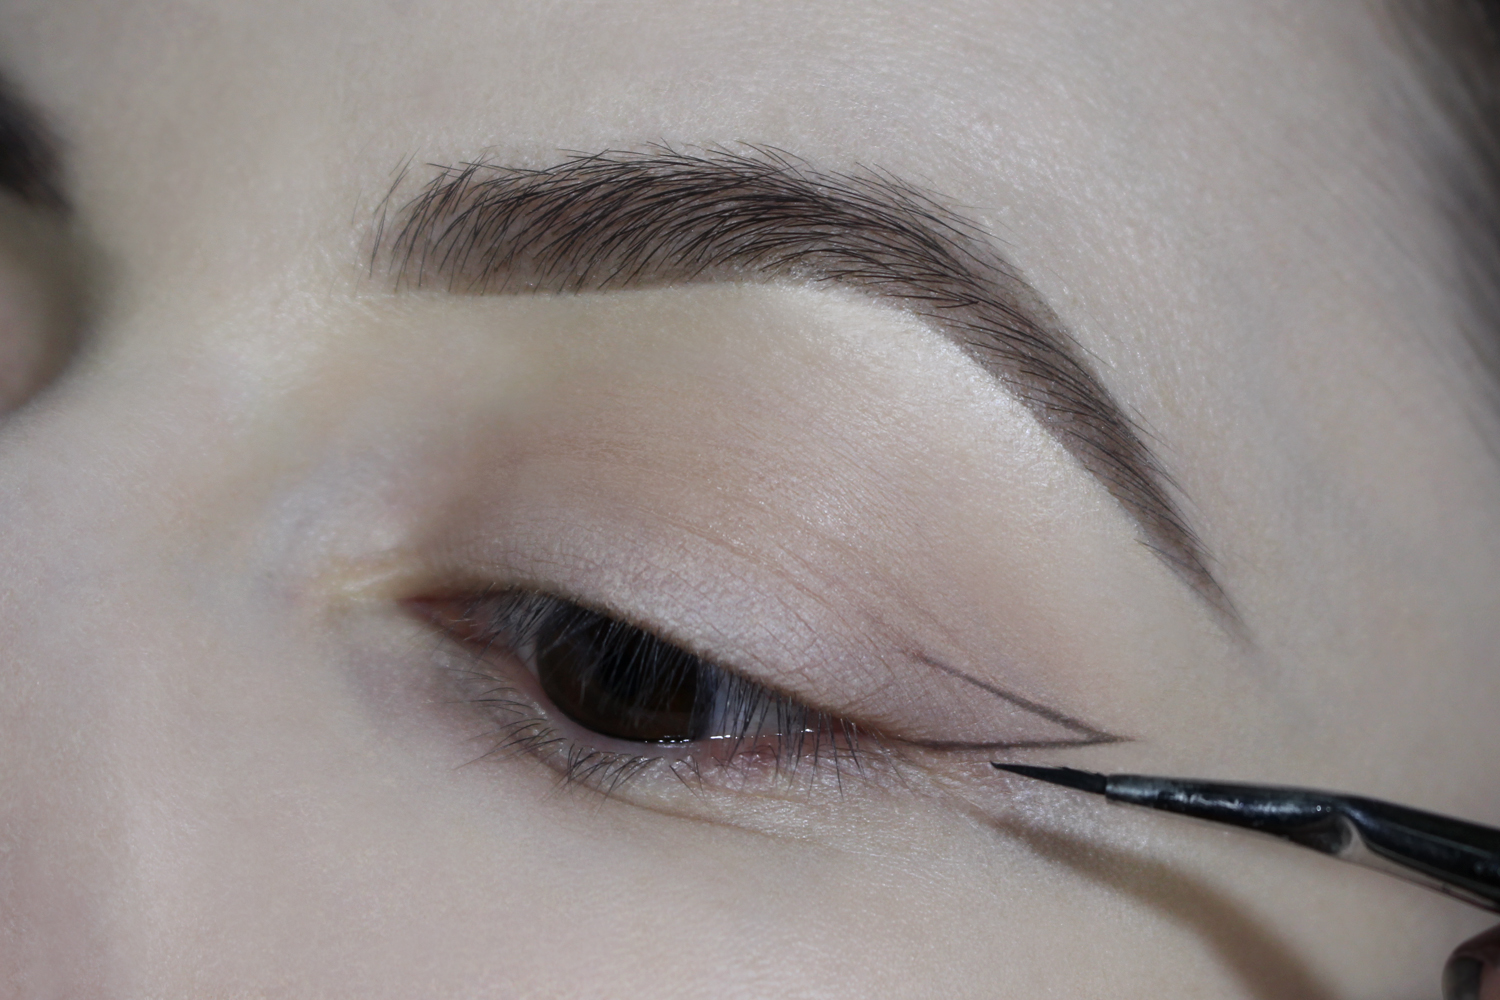 a close-up picture of an eye with a sketched eyeliner makeup